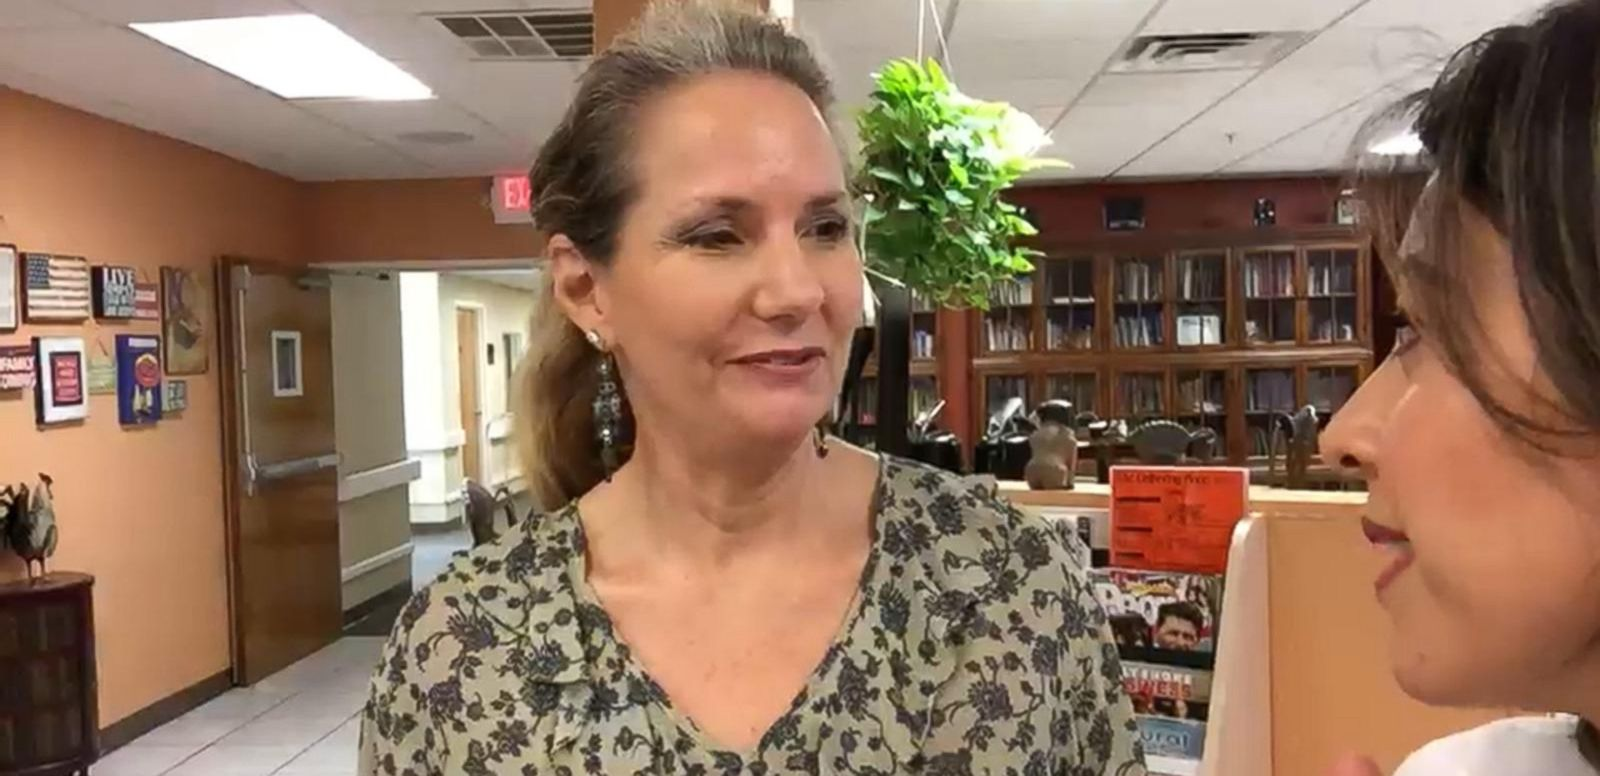 VIDEO: Talking Politics at 'The Gathering Place' Diner in Florida